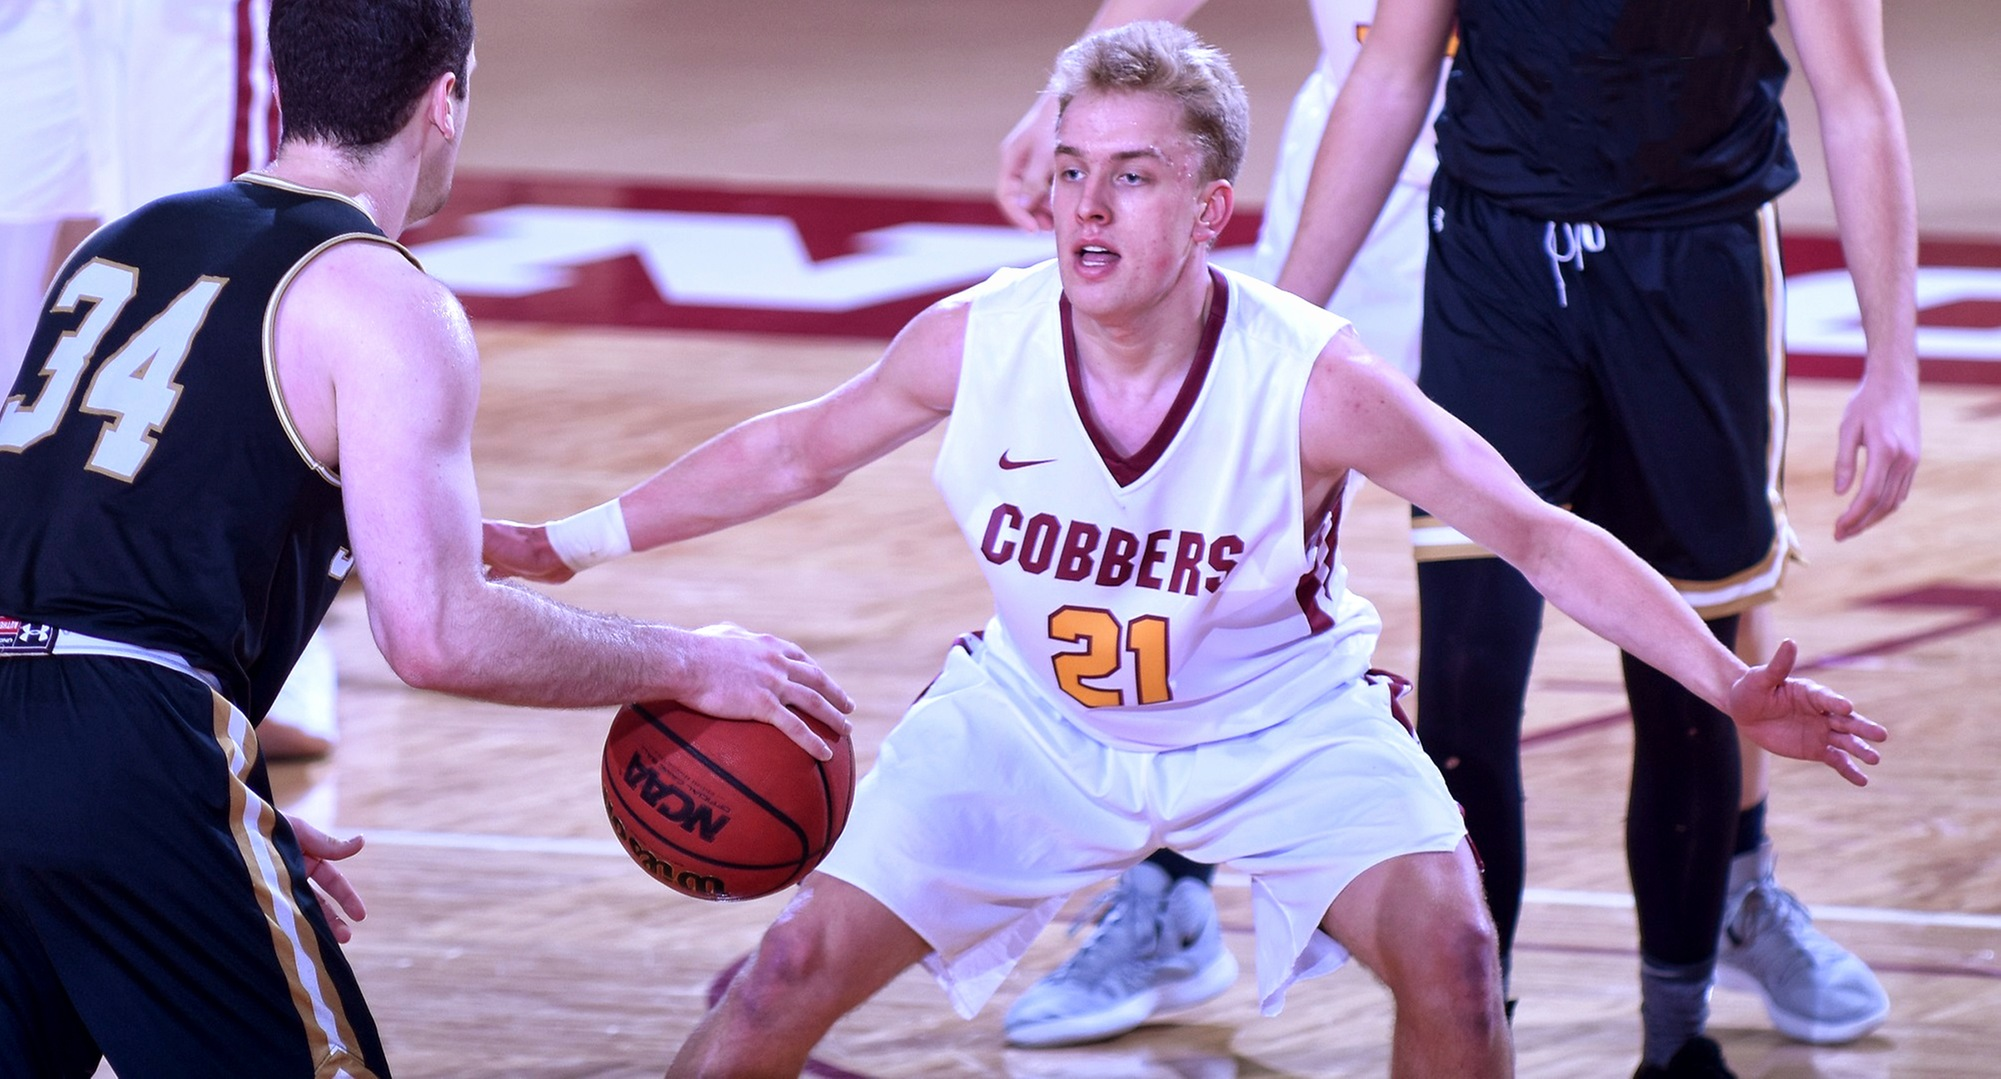 Sophomore David Birkeland scored a career-high 10 points and didn't miss a shot in the Cobbers' game at #4 St. Thomas.